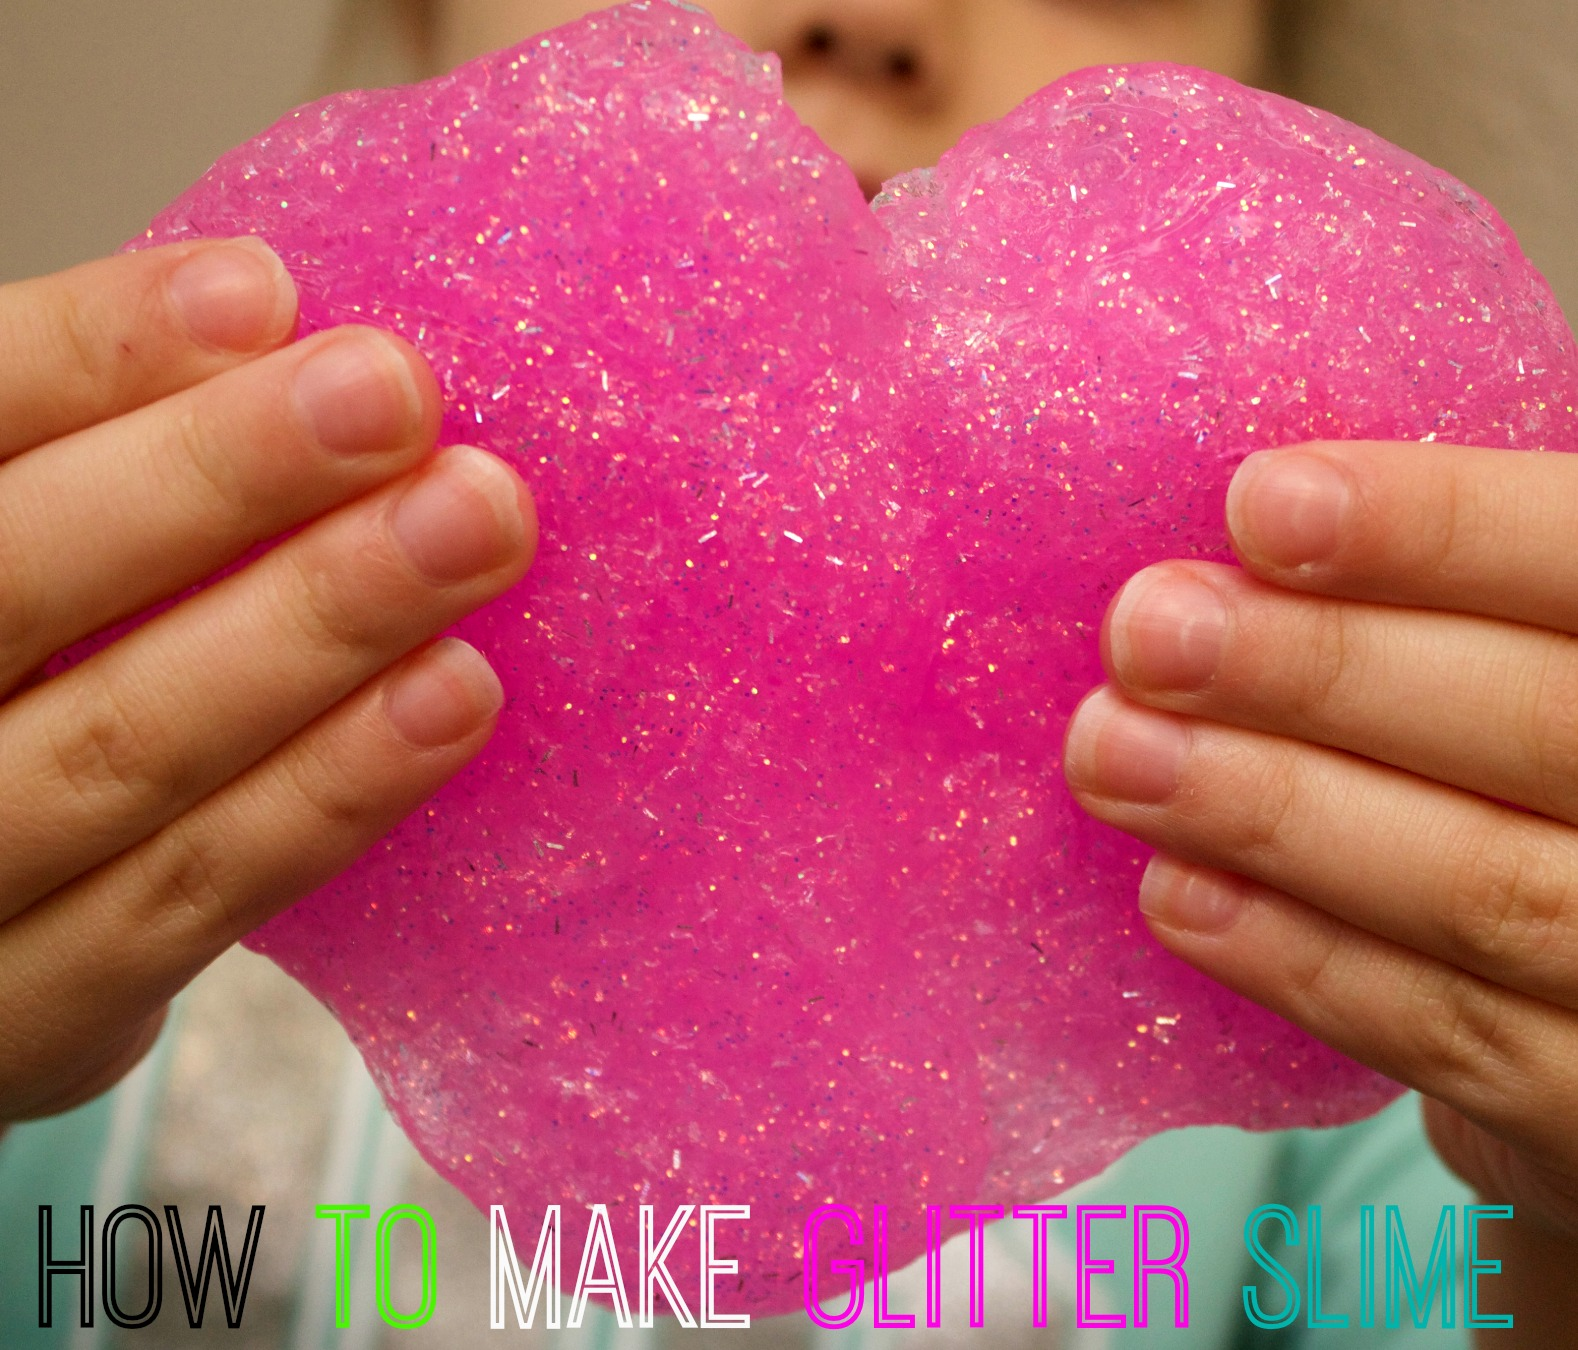 How To Make Slimeglitter Slime With Borax